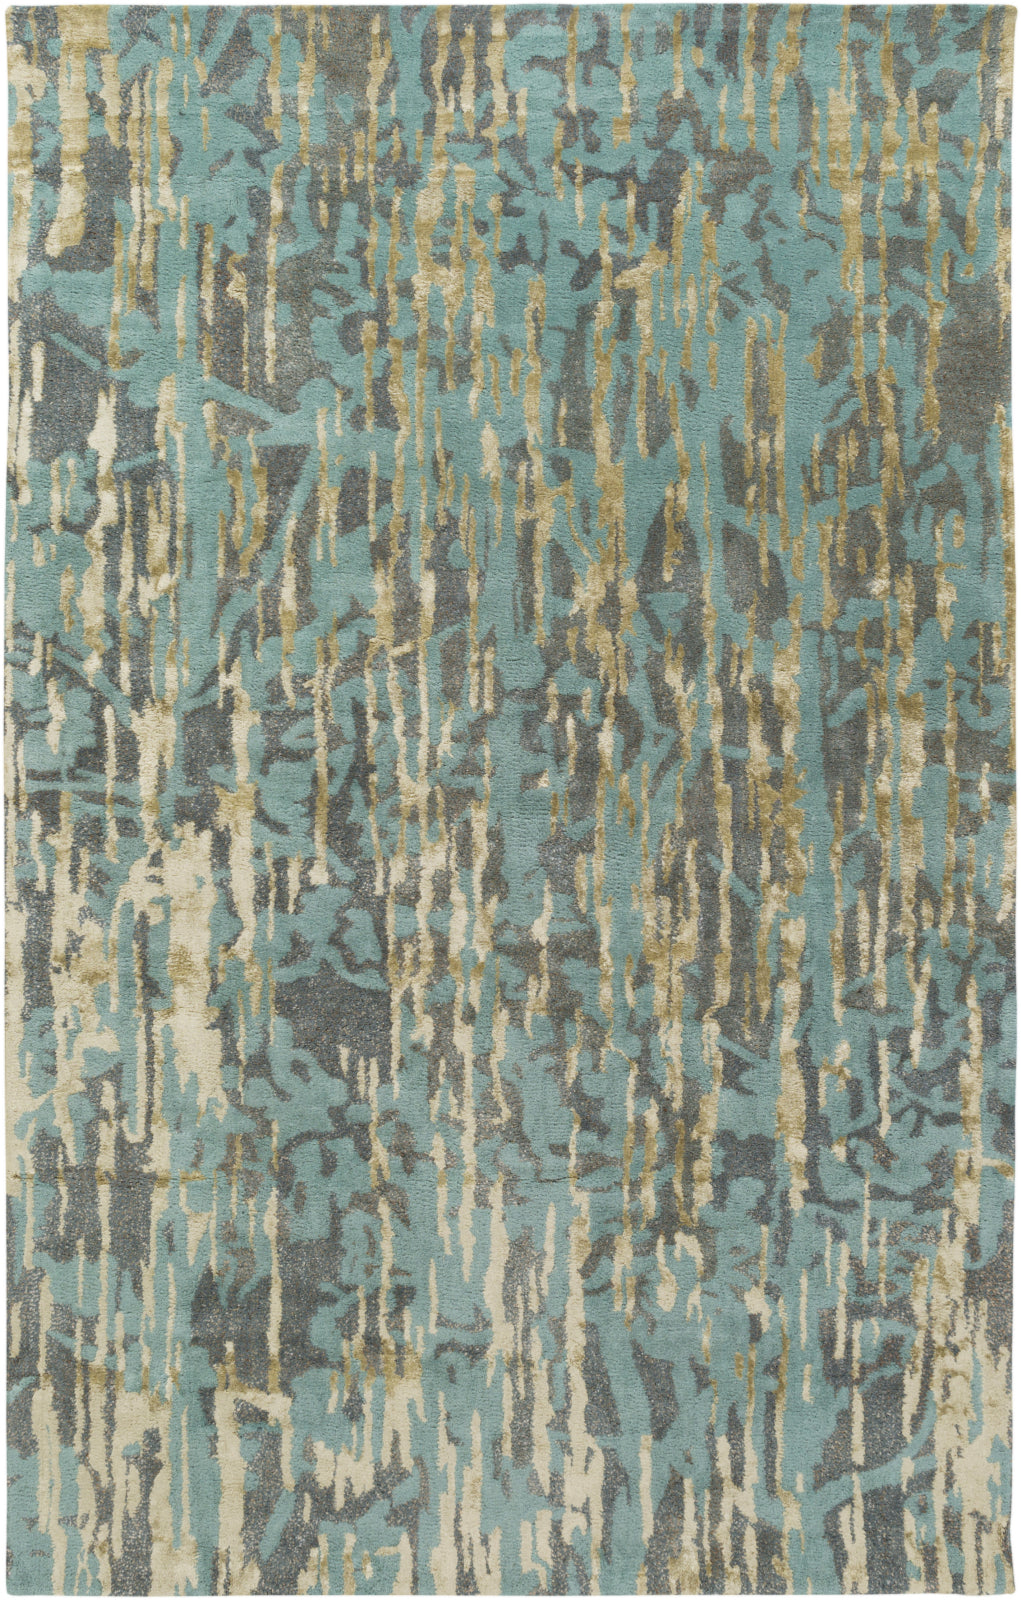 Surya Zephyr ZPH-3000 Area Rug by Candice Olson main image